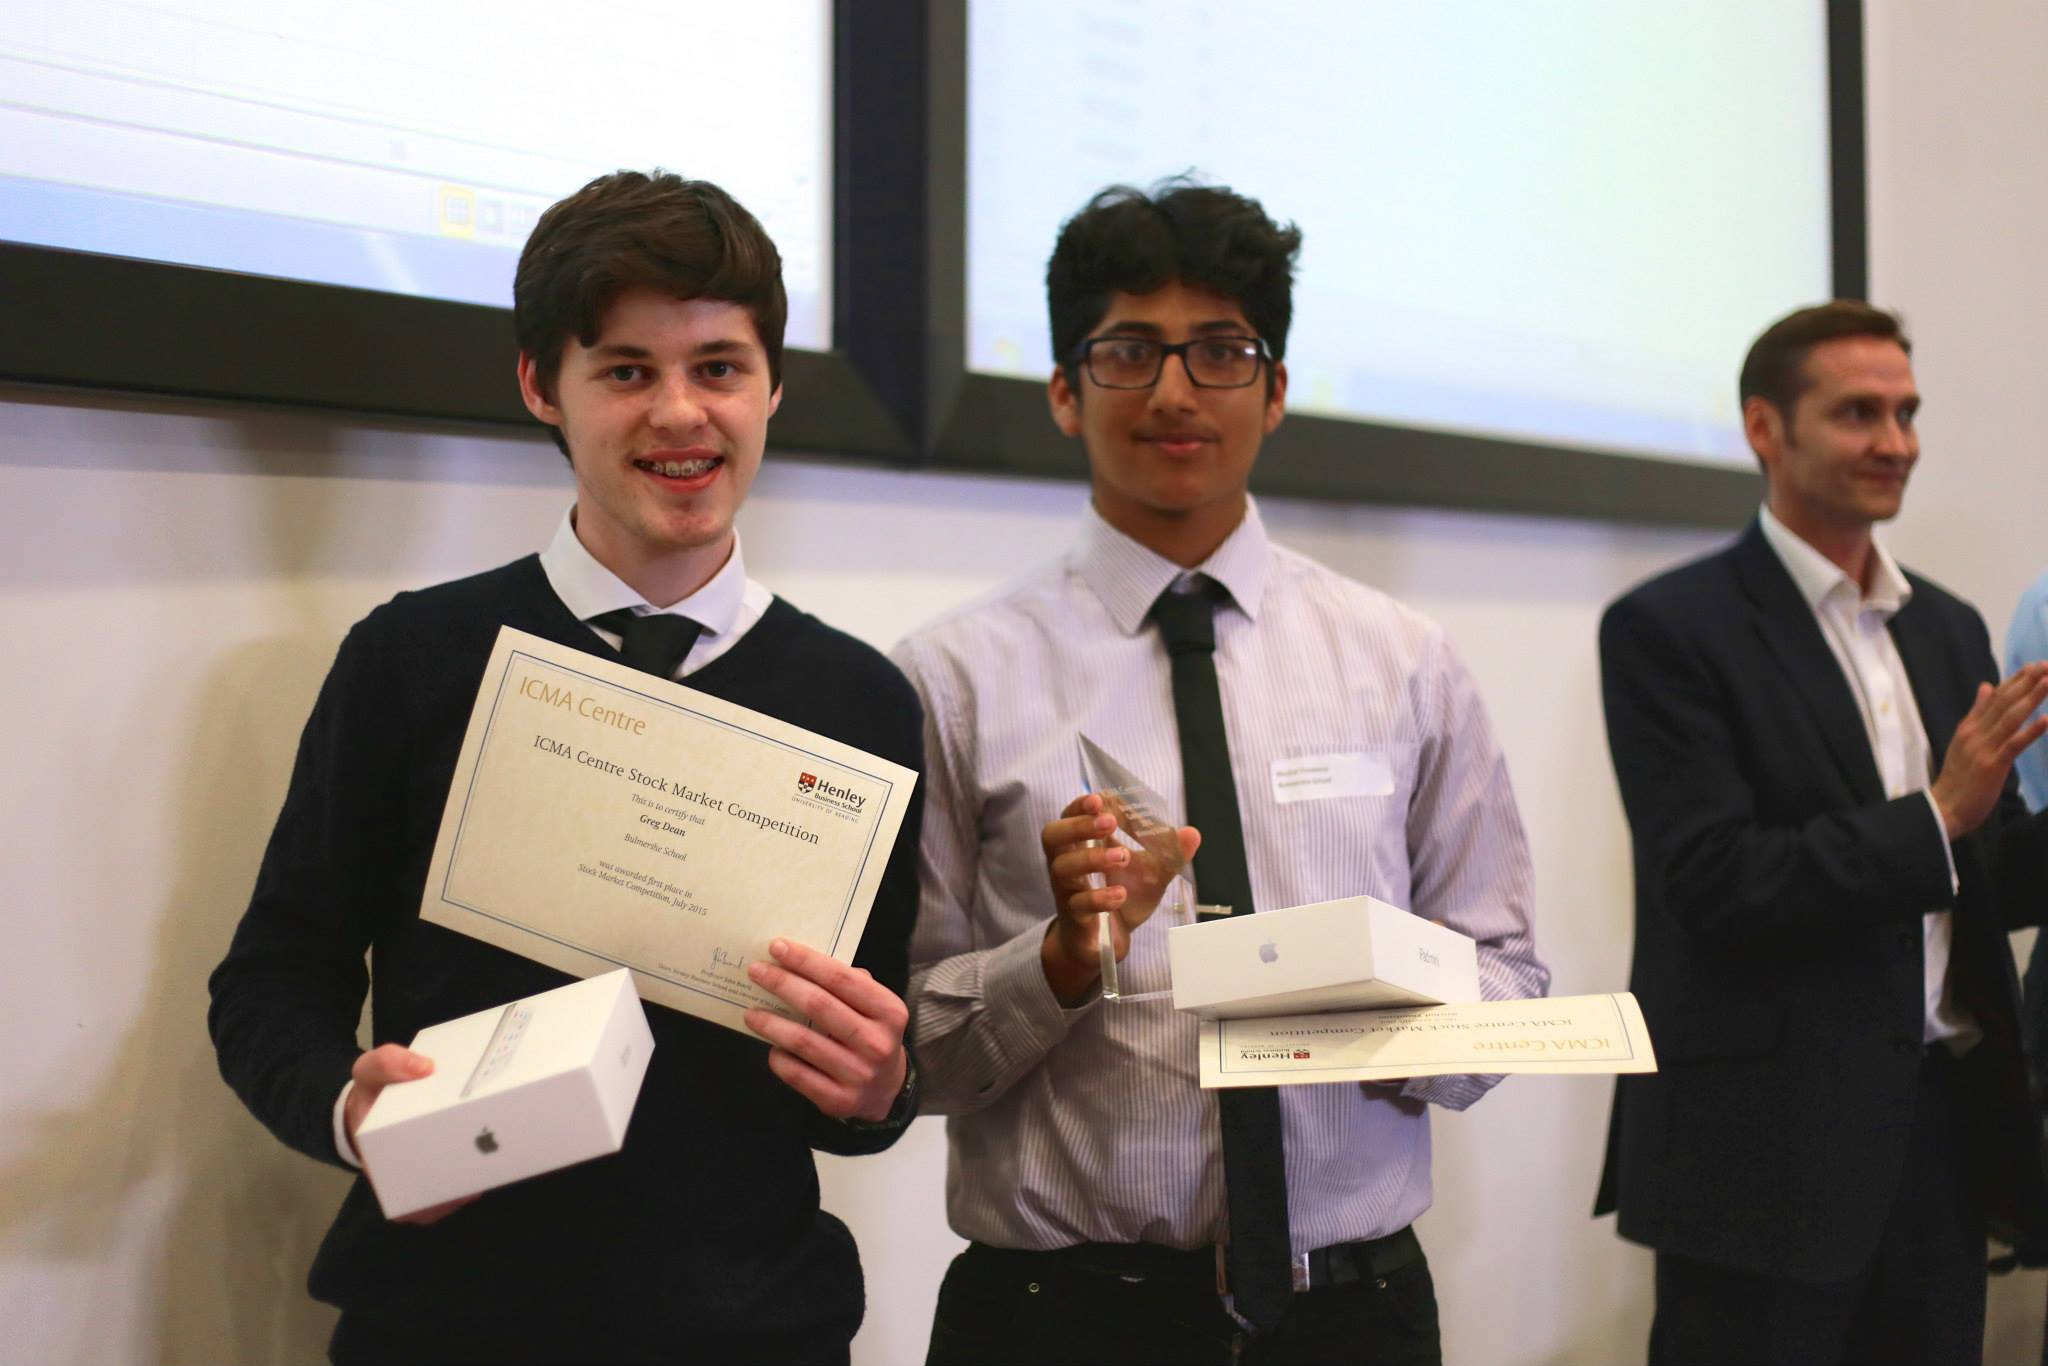 Bulmershe students take top position in ICMA Centre 2015 Stock Market Competition